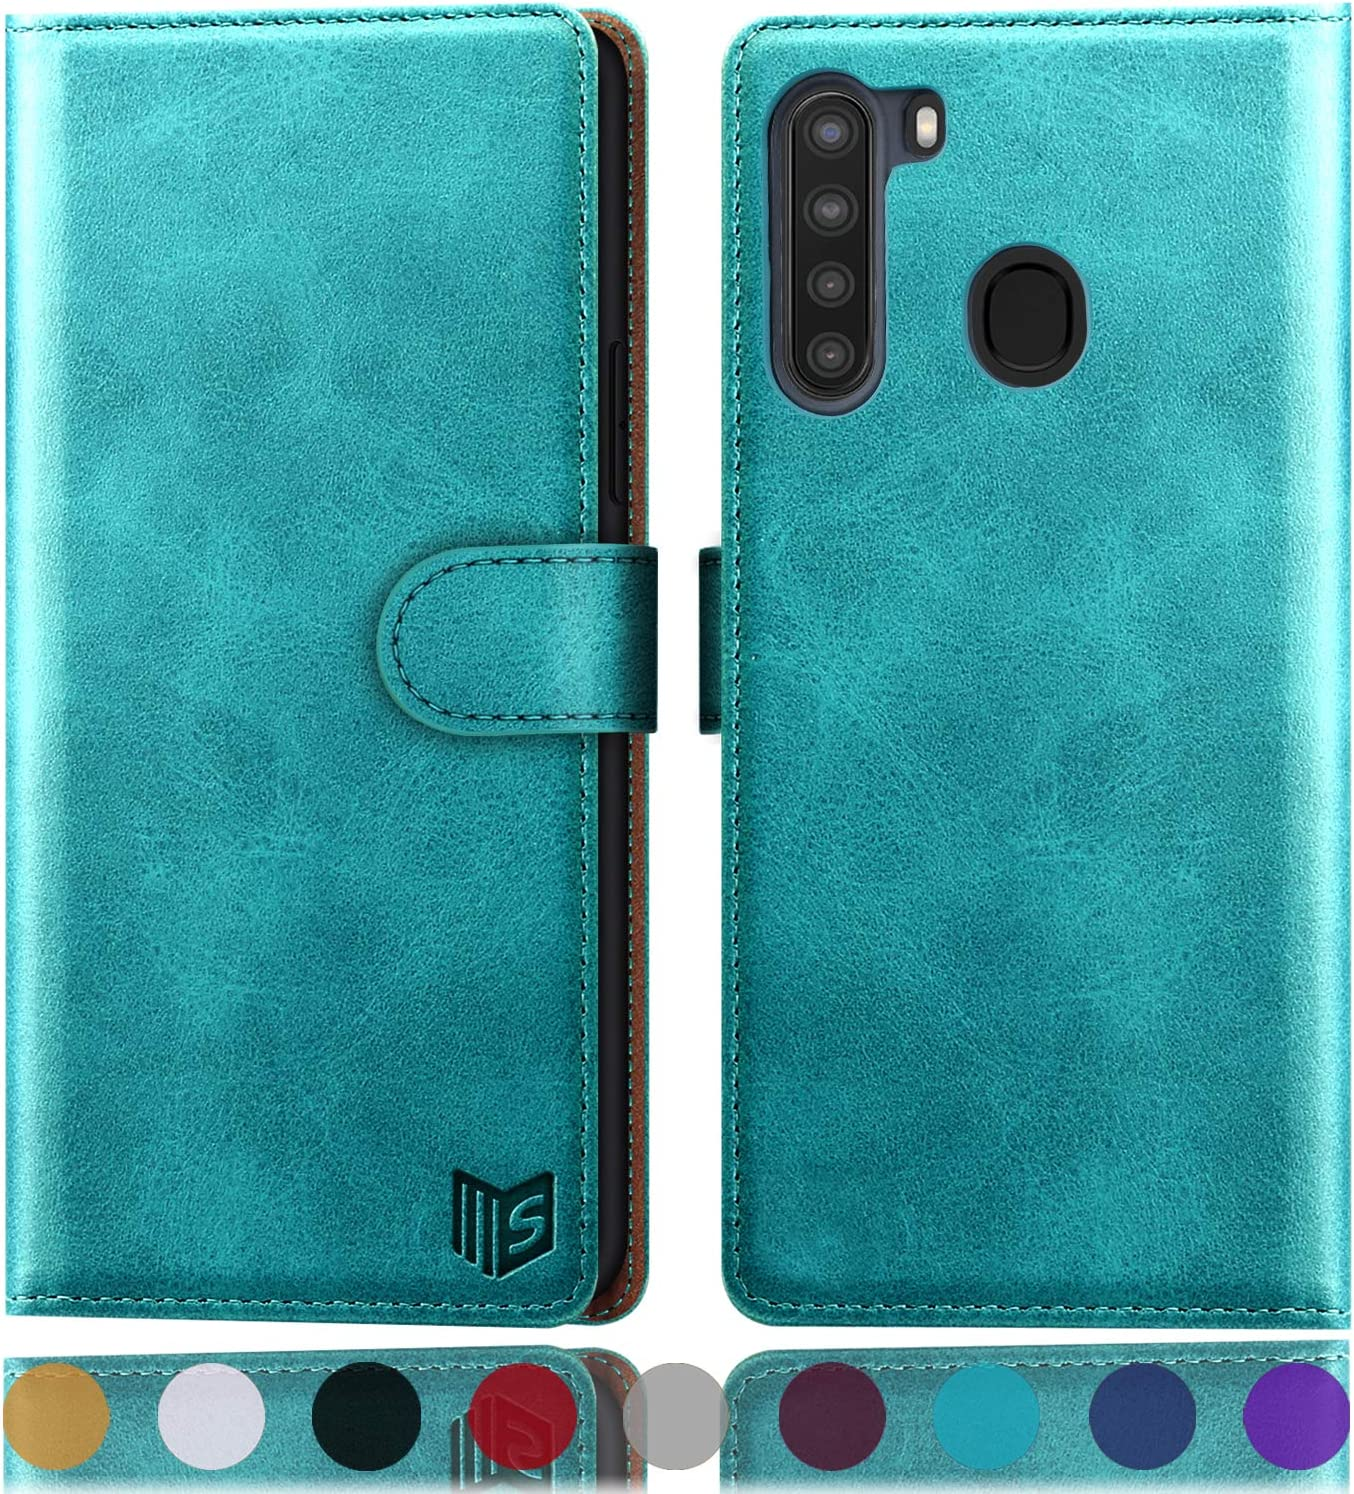 SUANPOT for Samsung Galaxy A21 Wallet case with RFID Blocking Credit Card Holder, Flip Folio Book PU Cell Phone case Cover Shockproof case Wallet Leather Pocket for Men Women Lady(Blue Green)